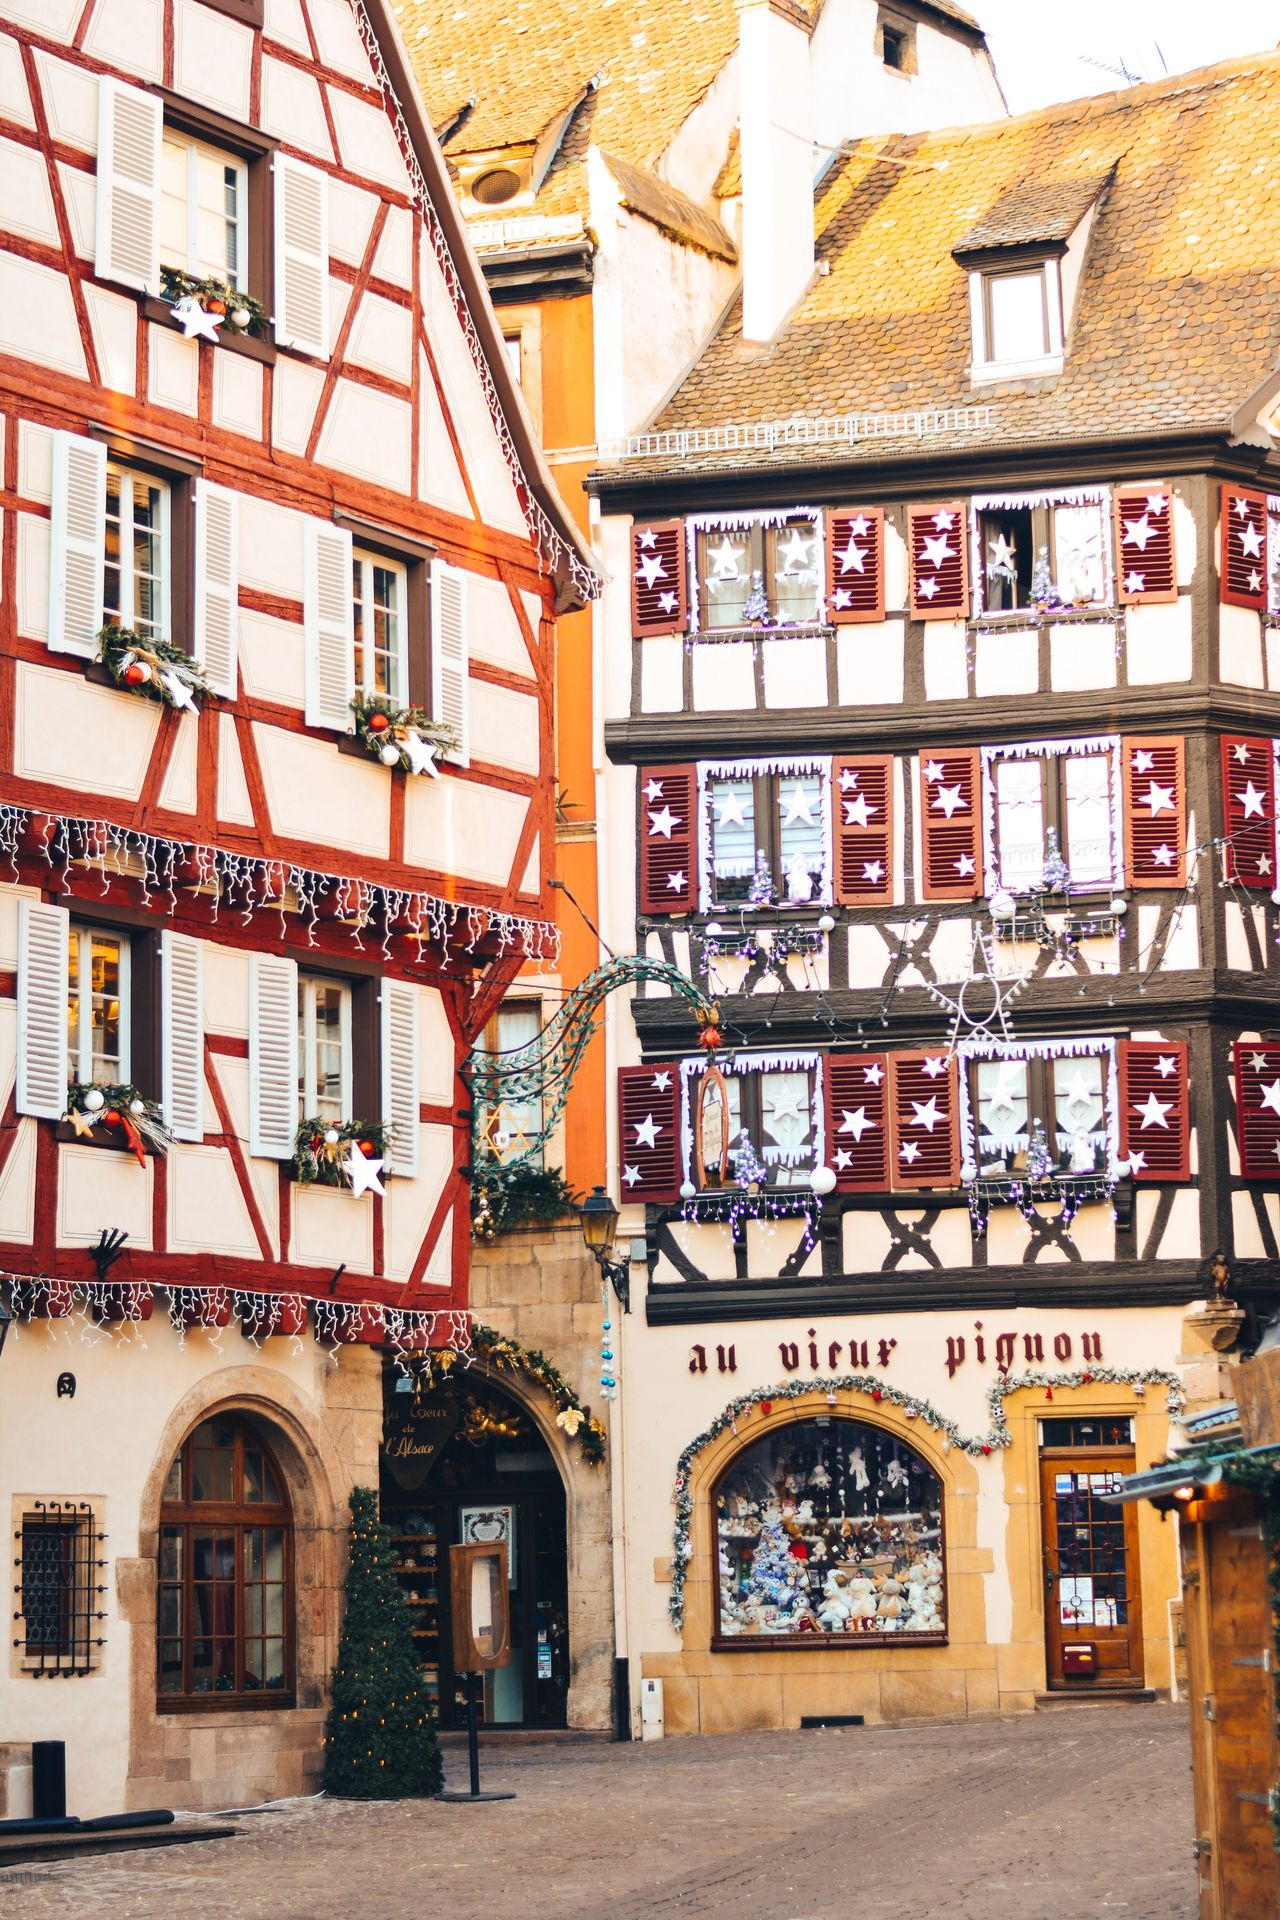 My Year My View Building Exterior Architecture Built Structure City Outdoors Residential Building No People Day Statue Sky Travel Wanderlust Fairytale  Christmas France Colmar Travel Destinations Christmas Market Wonderful City Architecture Christmas Ornament Streetphotography